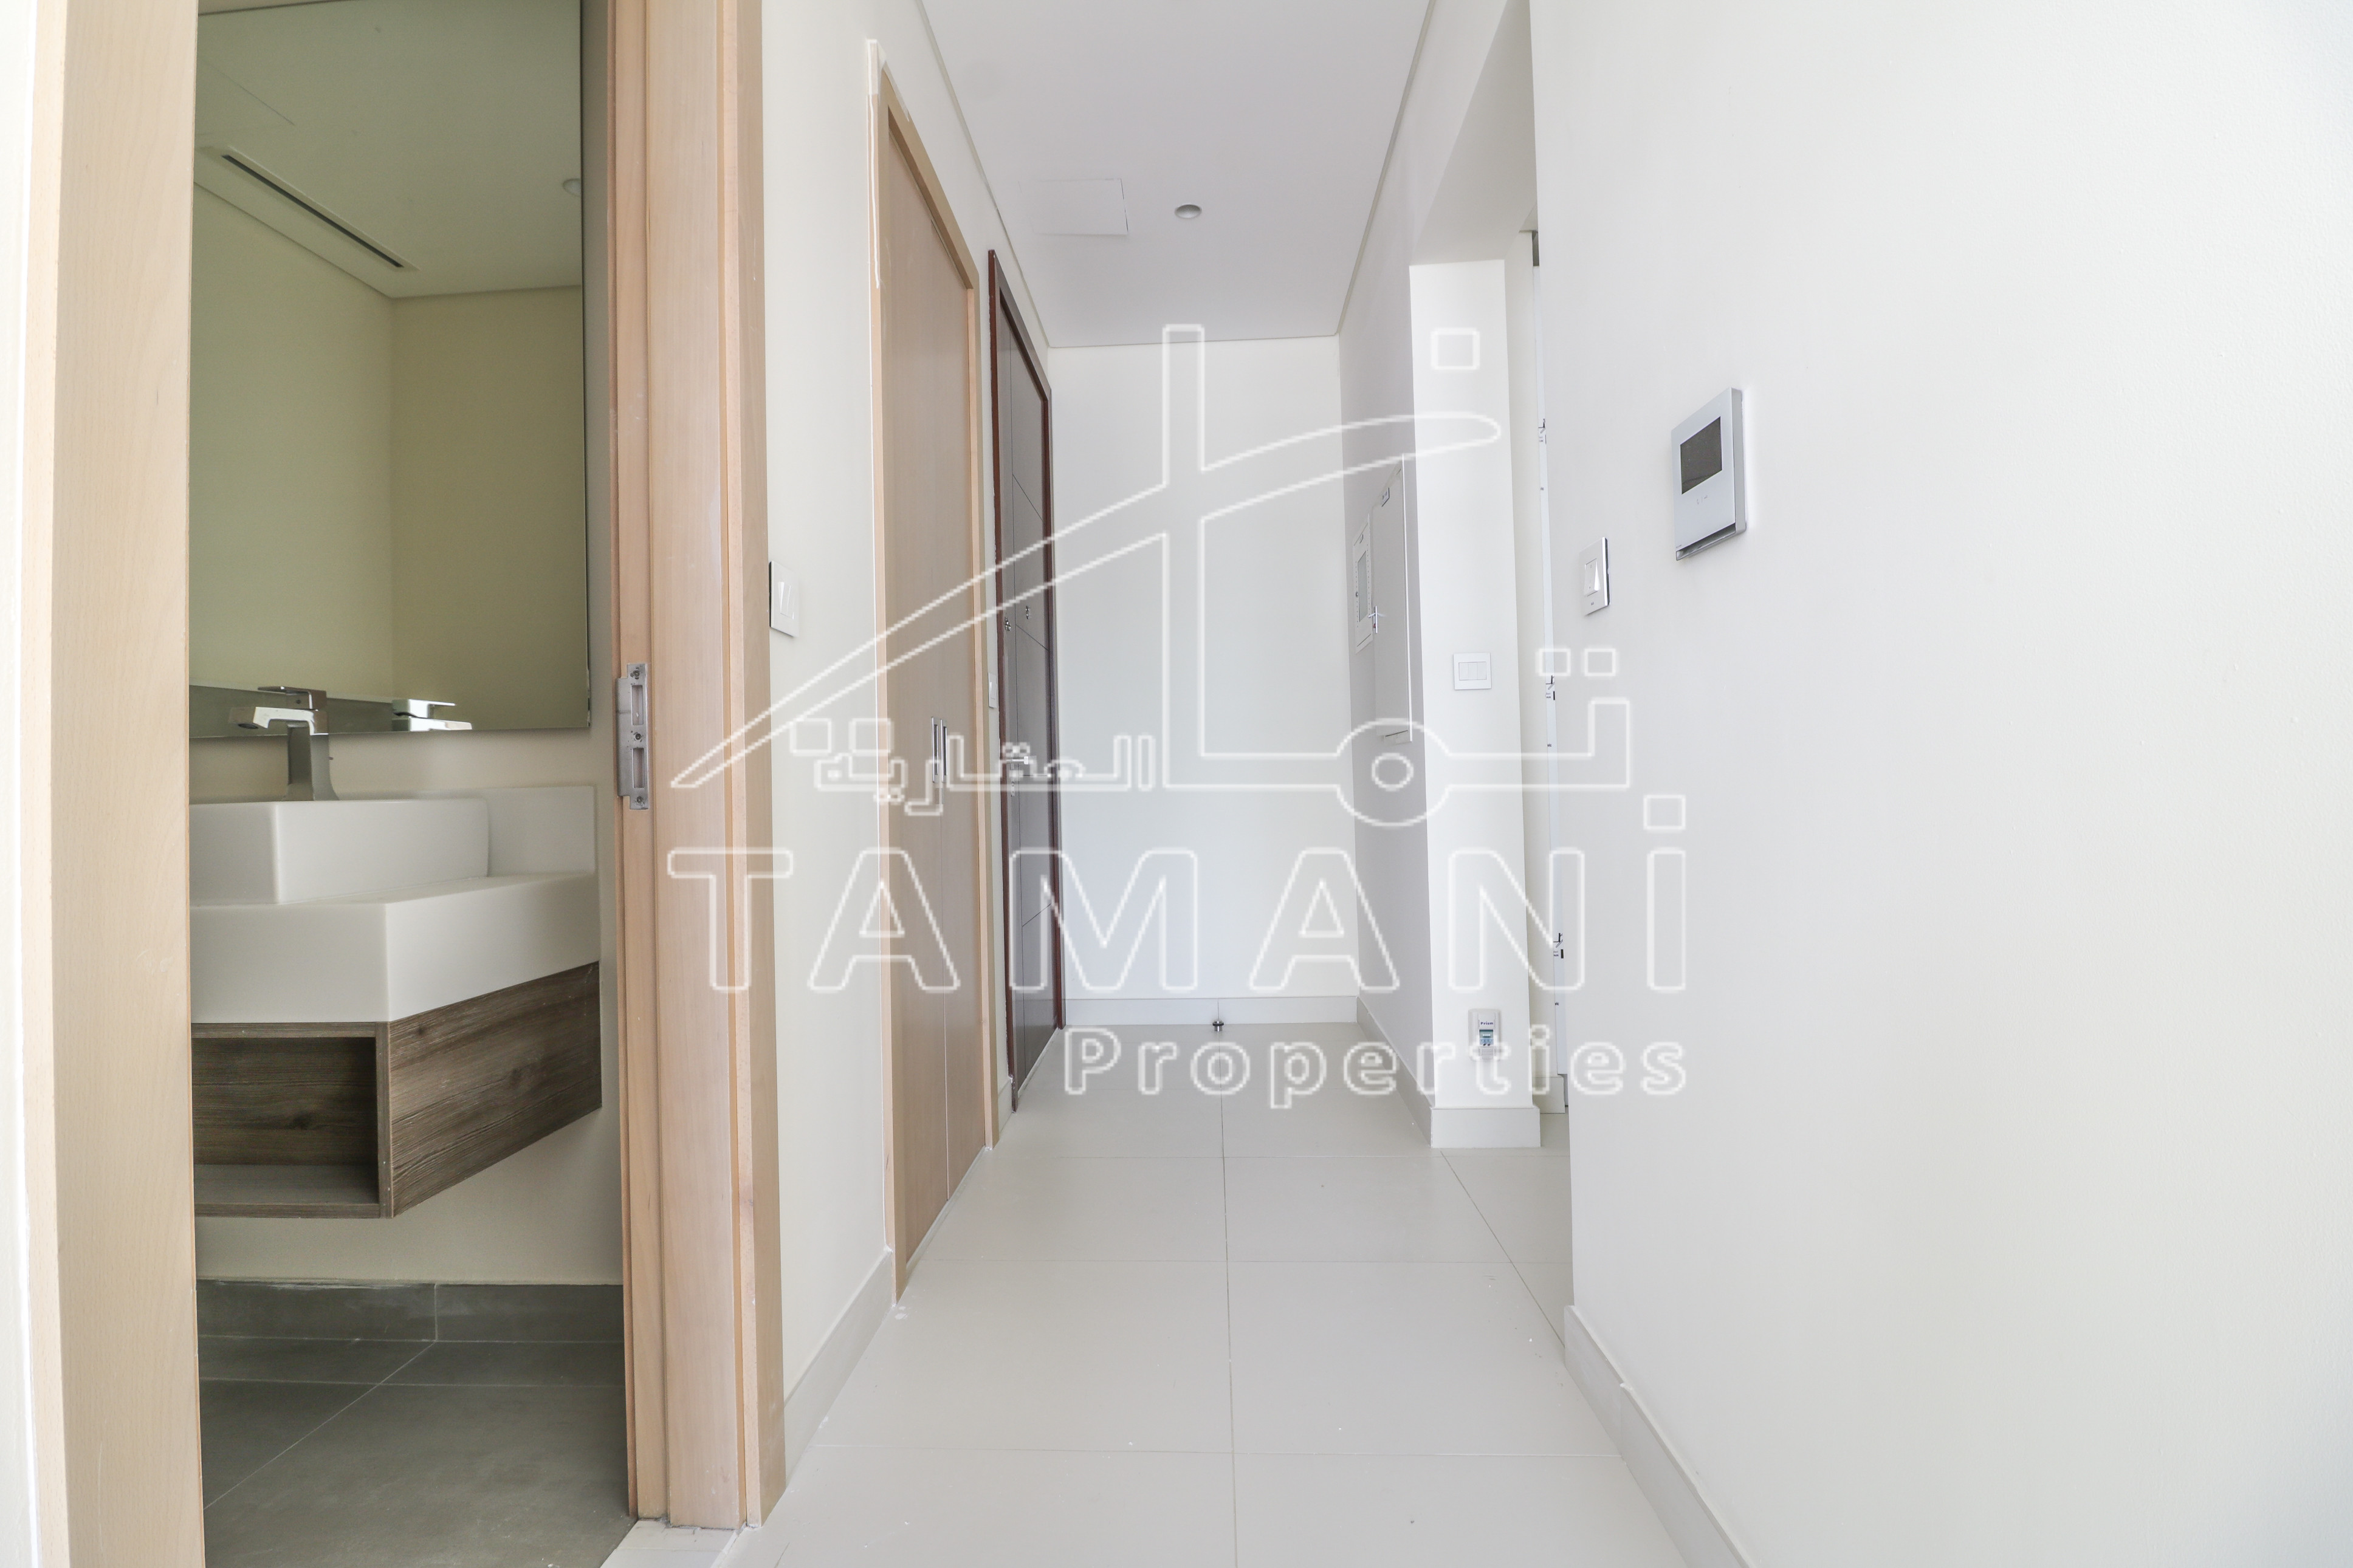 1 Bedroom plus study Exclusive at TAMANI - Mada Residences by ARTAR